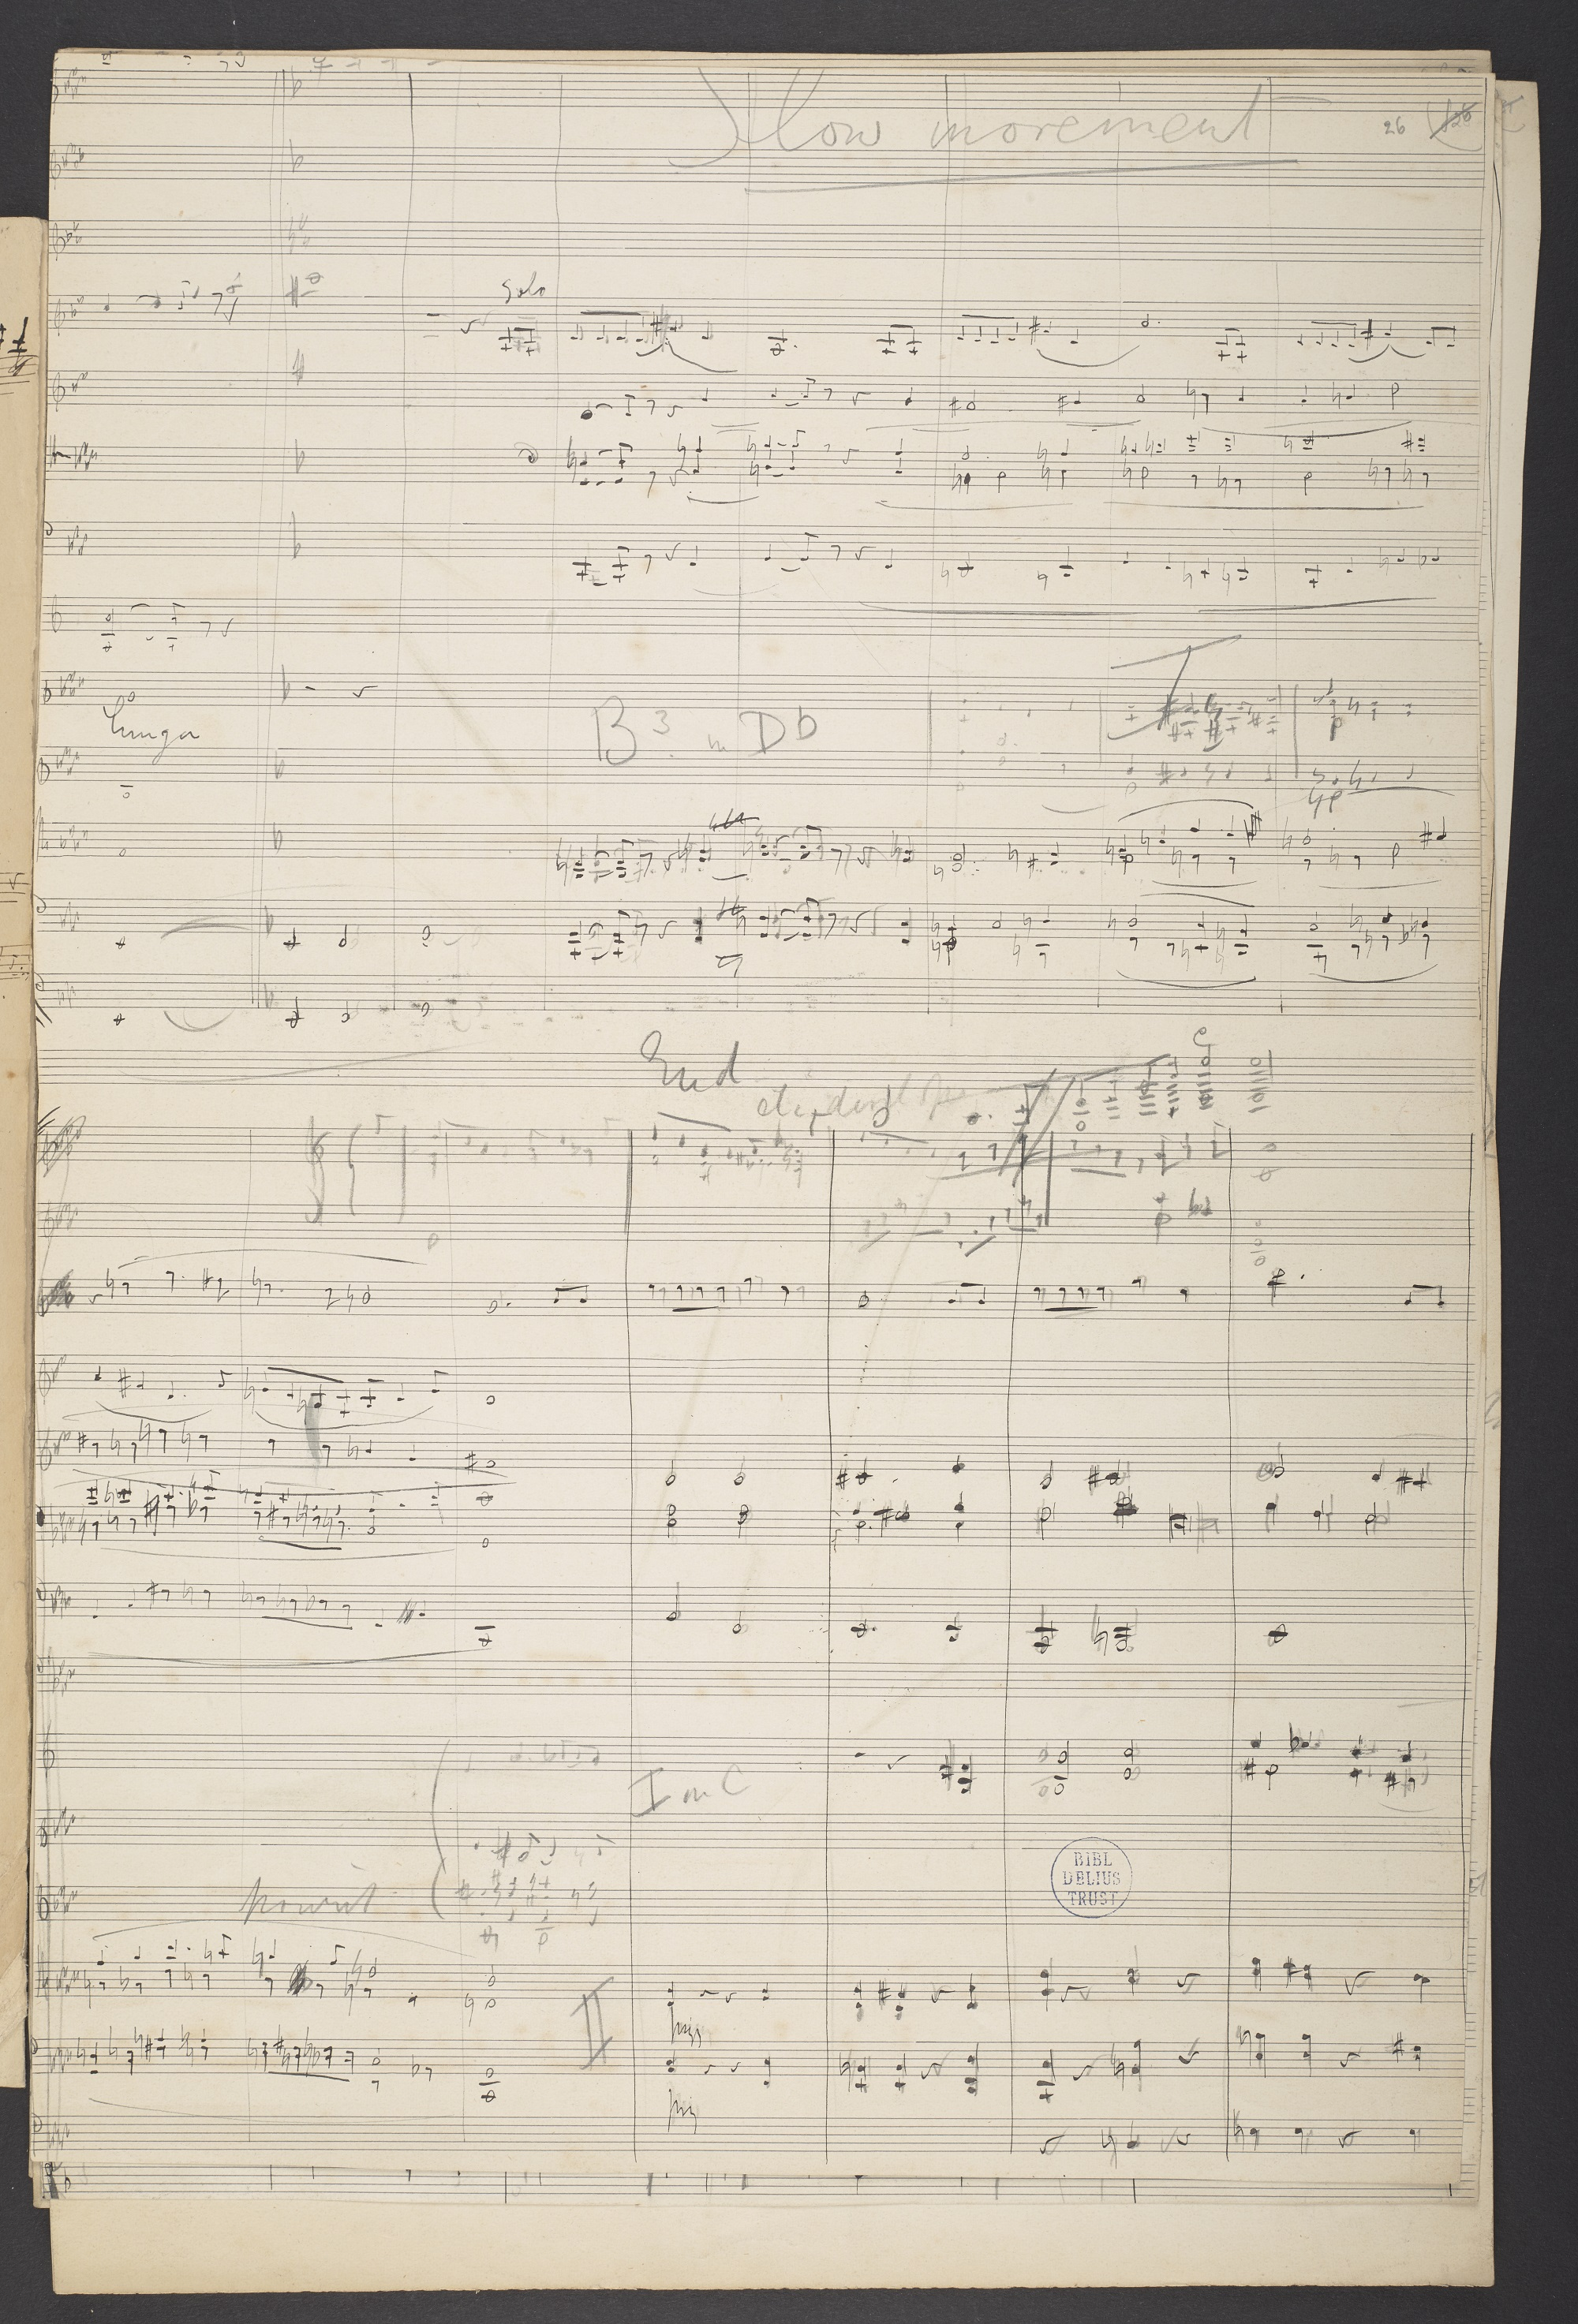 Sketch for Frederick Delius, 'Appalachia', slow movement, f. 26r